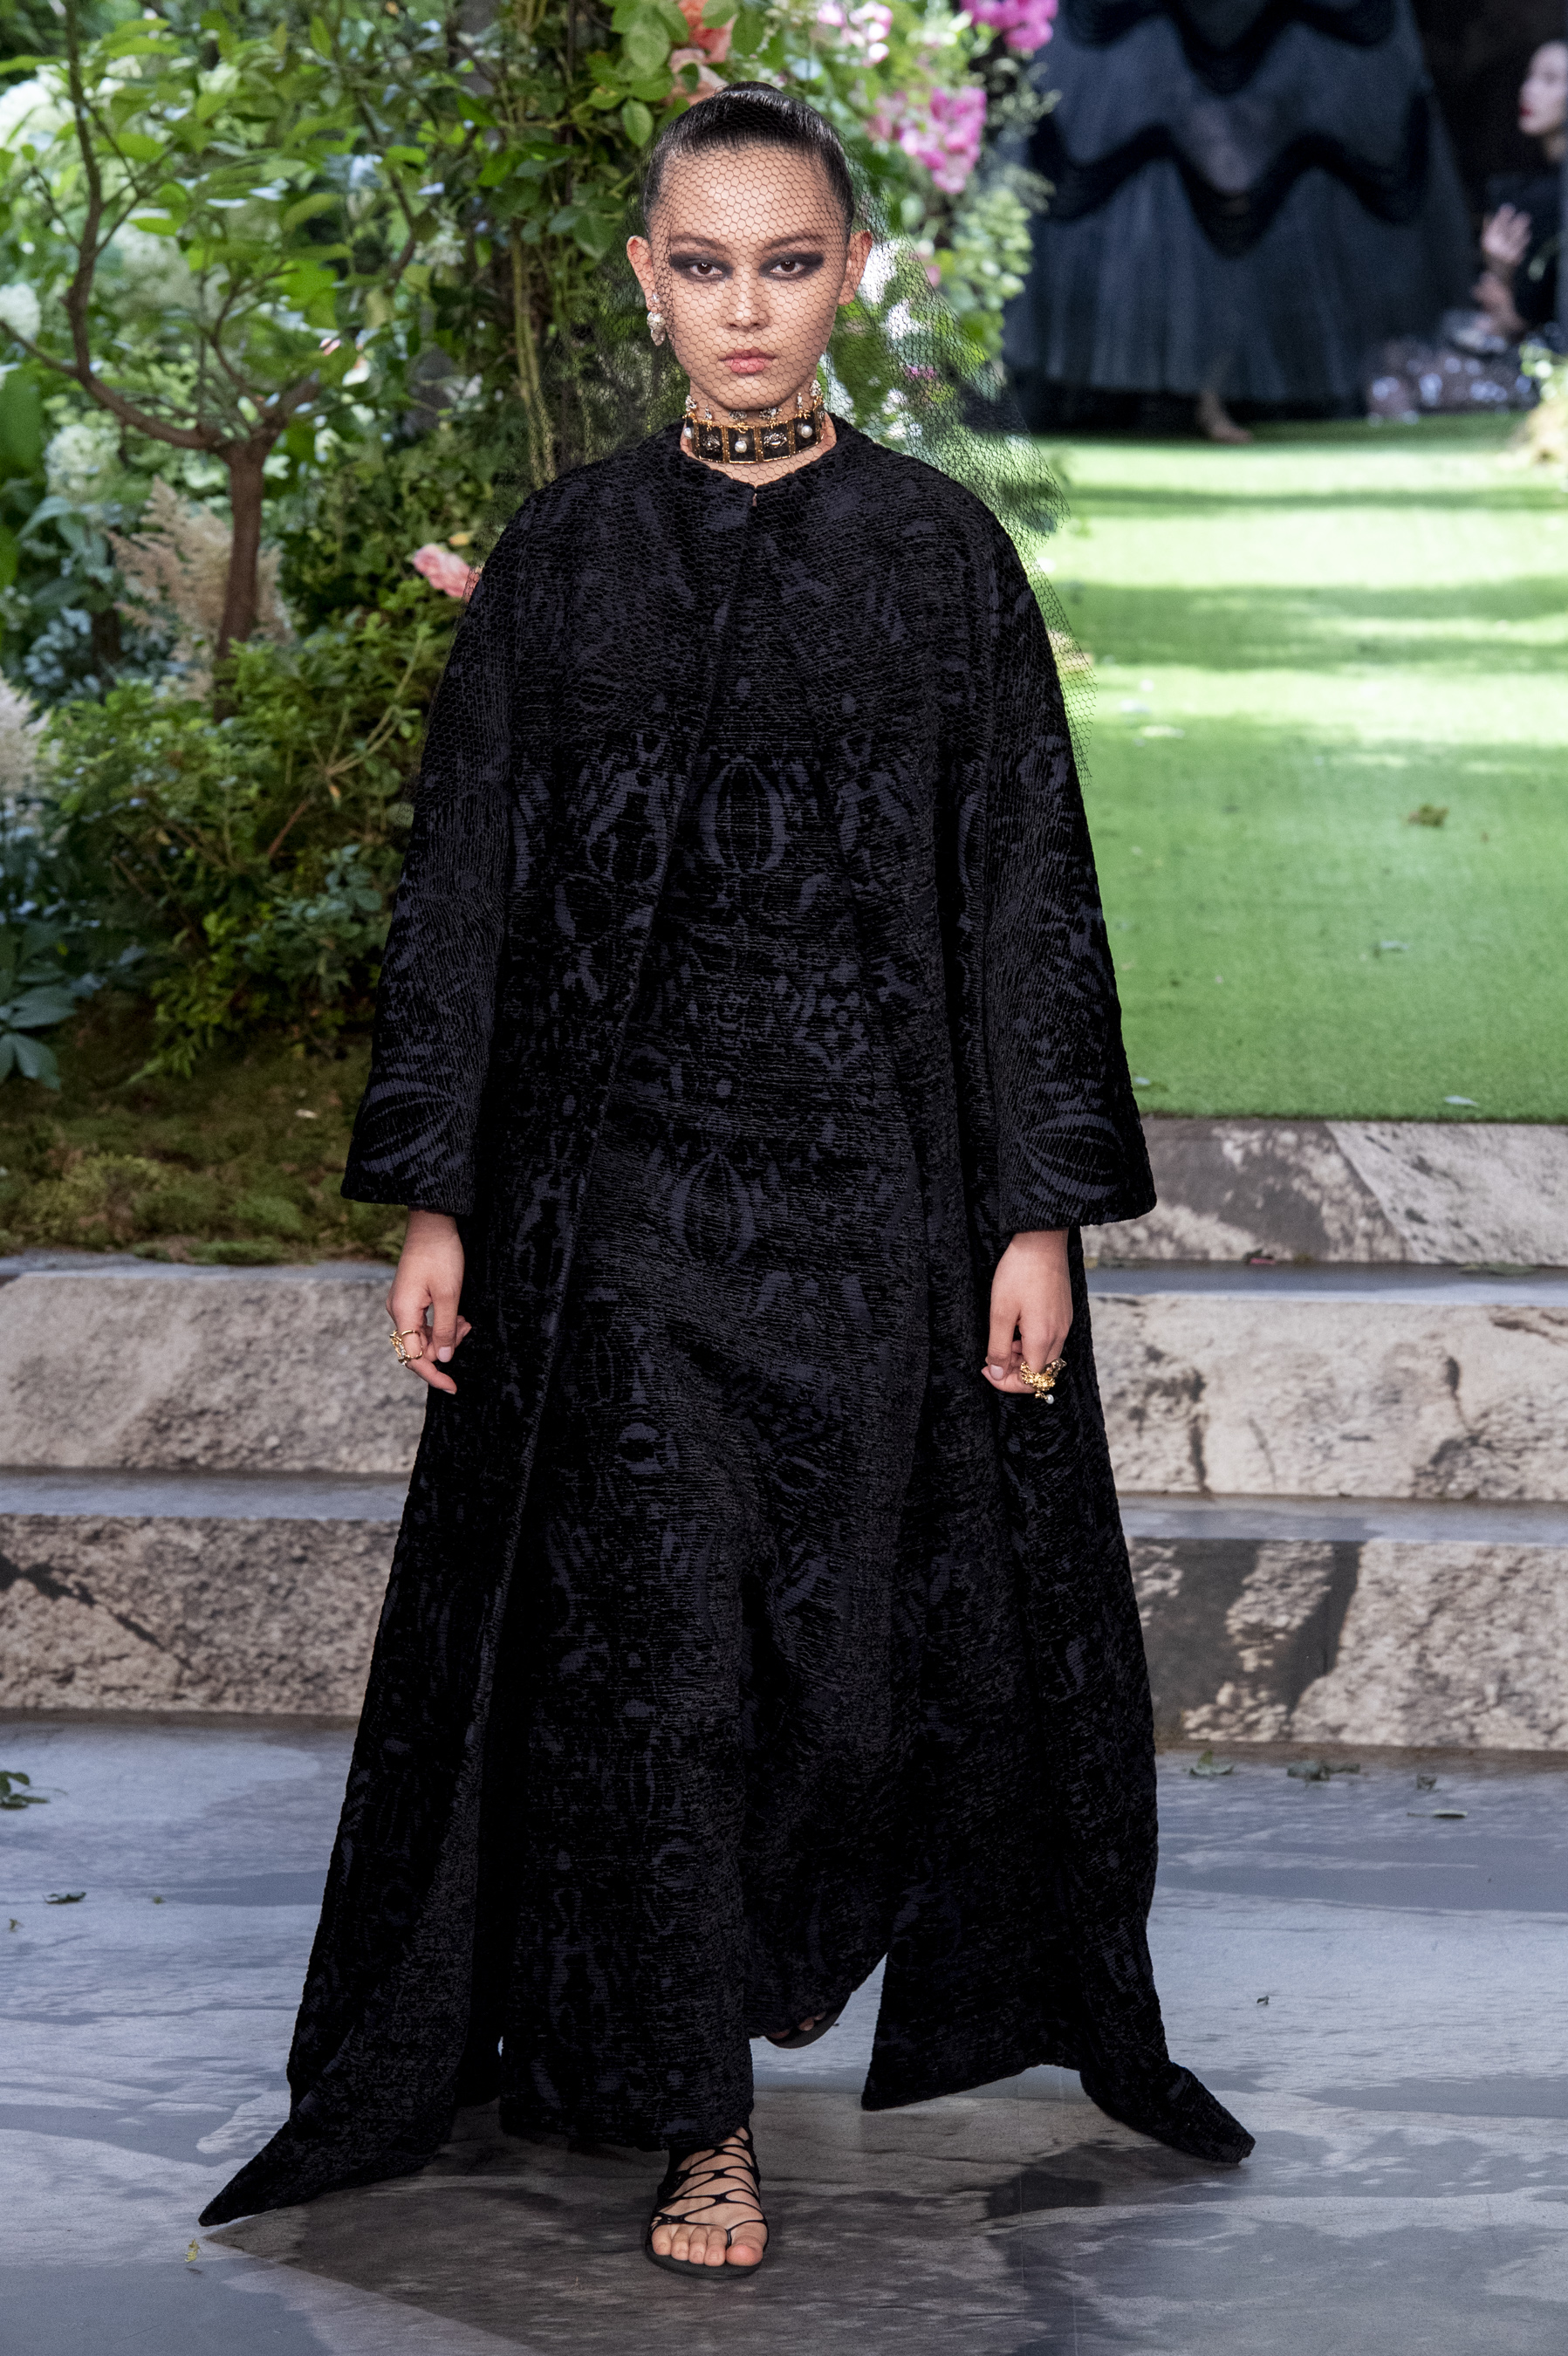 Christian Dior Couture Fall 2019 Fashion Show